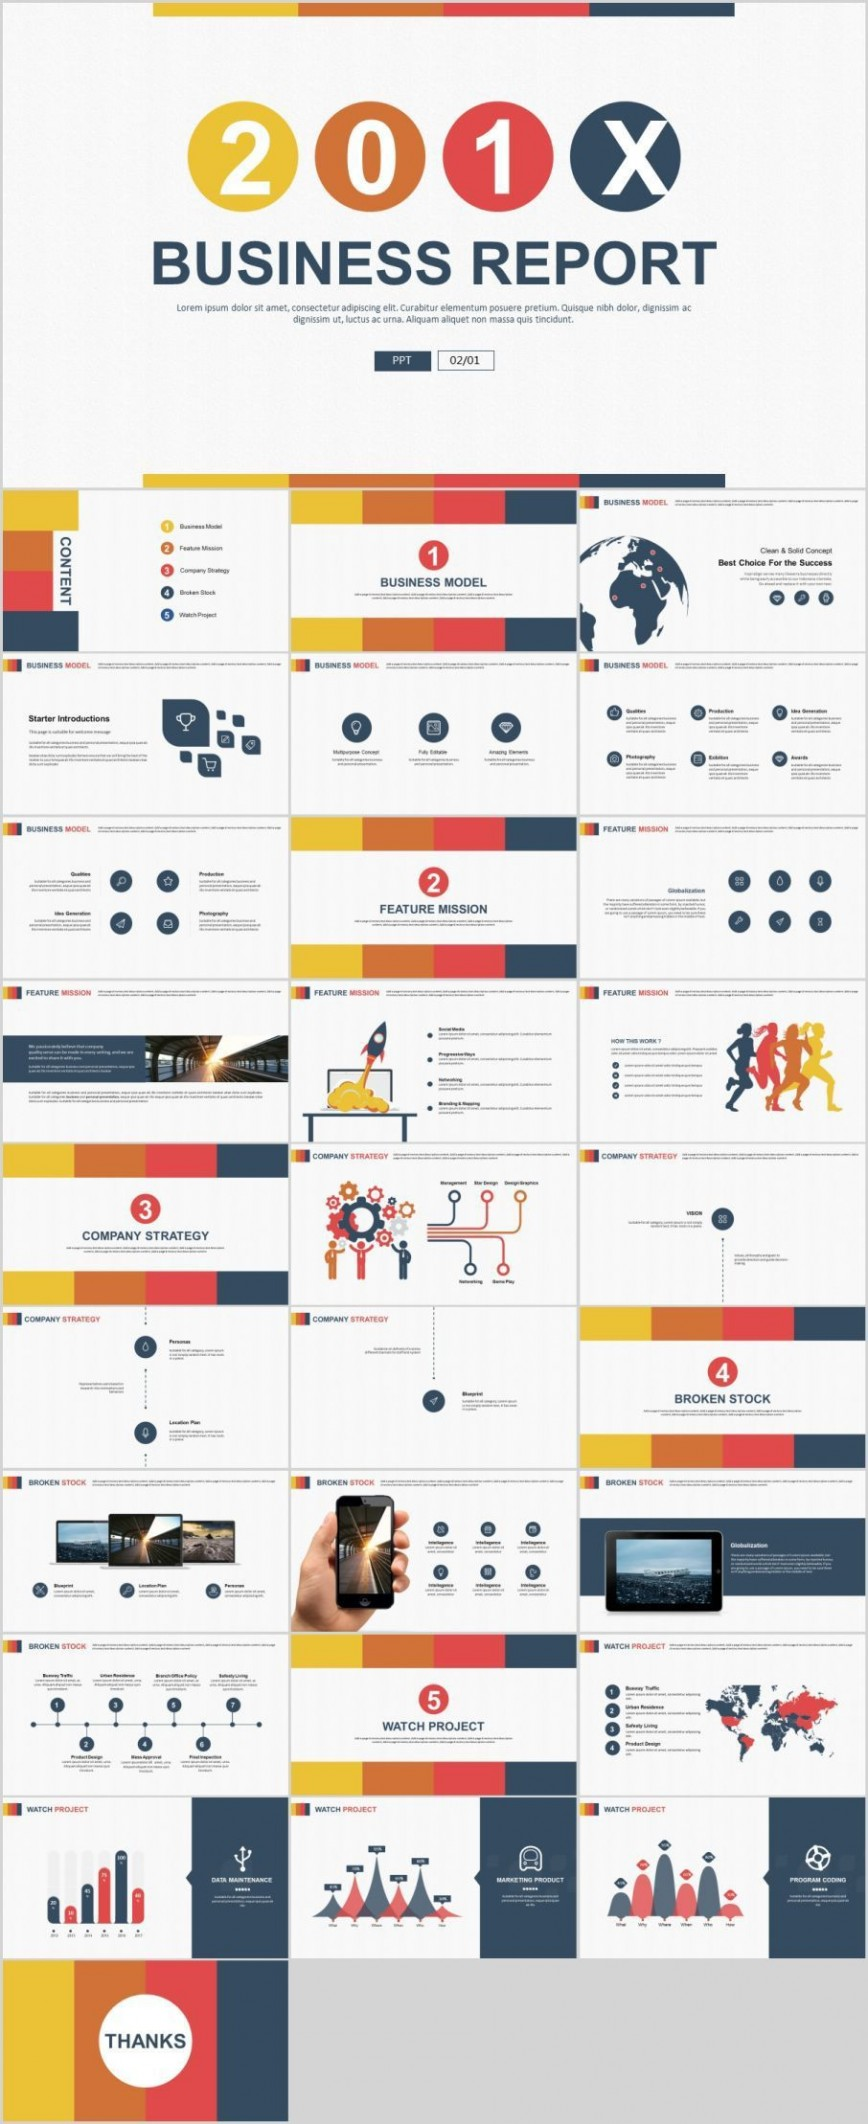 003 Remarkable Timeline Template Presentationgo Idea 868